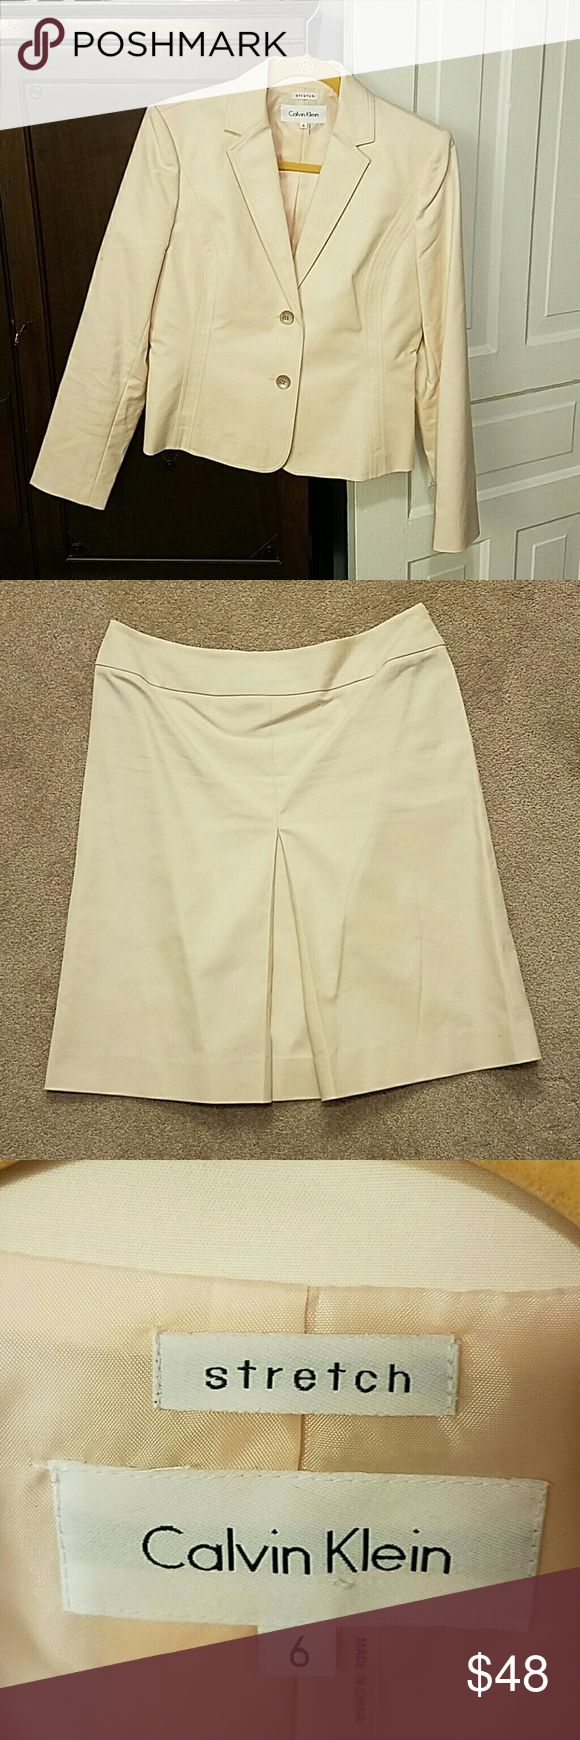 Calvin Klein Suit Great, classic cut skirt suit. Light khaki/peach undertone, V-ed accent in the front of the skirt, slight A-line cut, no slit in the back. Size 6, but fits like an 8. I'm certainly not a 6 and it fits me comfortably! Great Spring/Easter suit! Calvin Klein Other